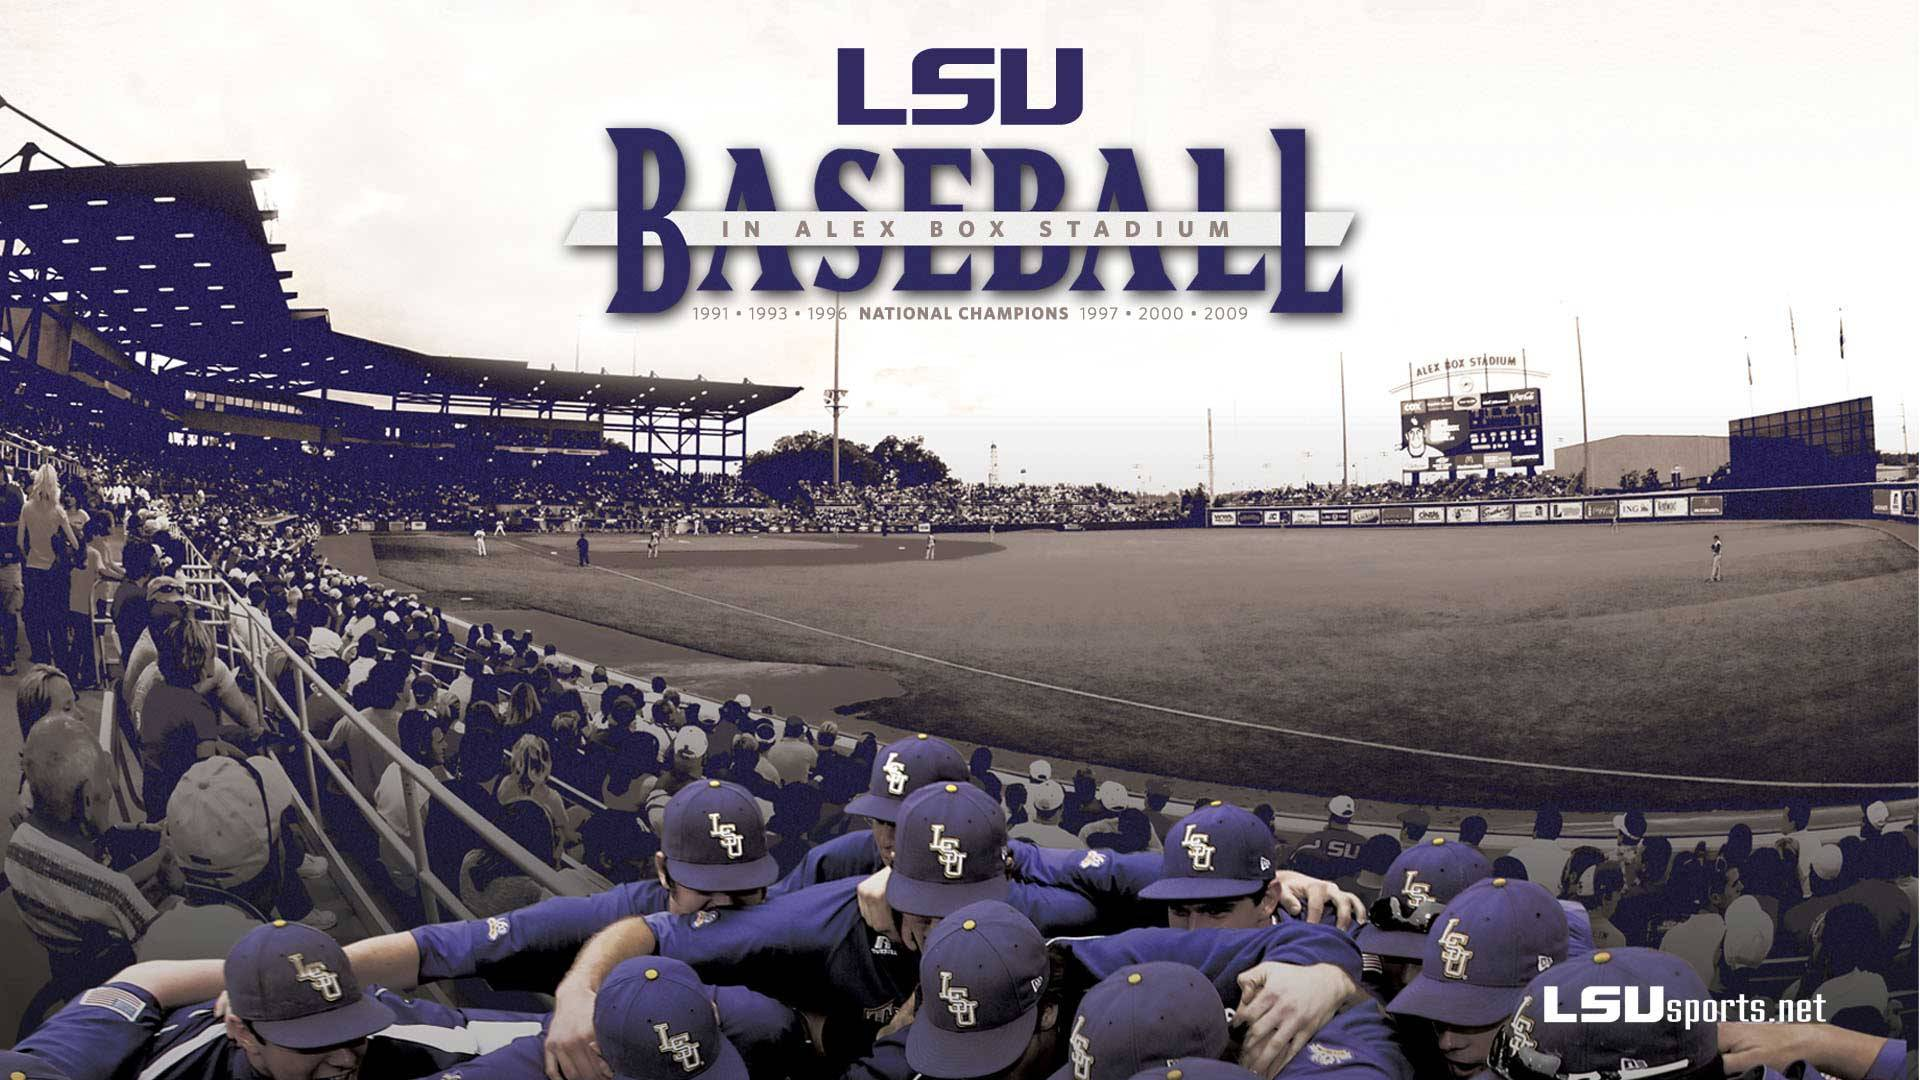 Lsu Baseball Wallpaper